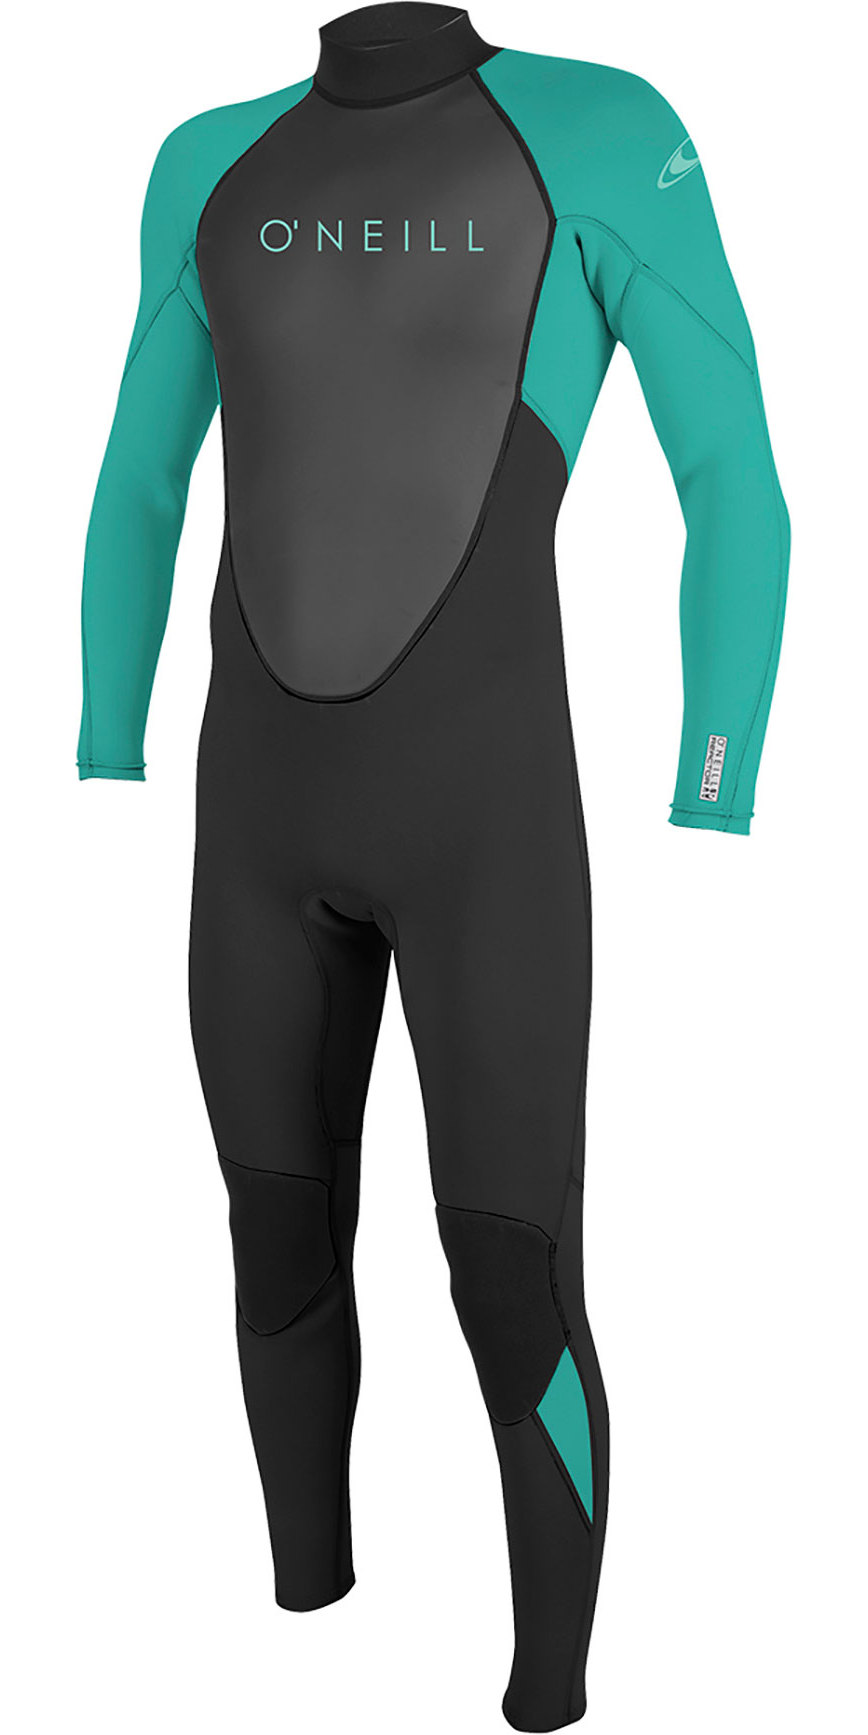 2019 O'Neill Youth Reactor II 3 / 2mm Tilbage Zip Wetsuit Black / Aqua 5044